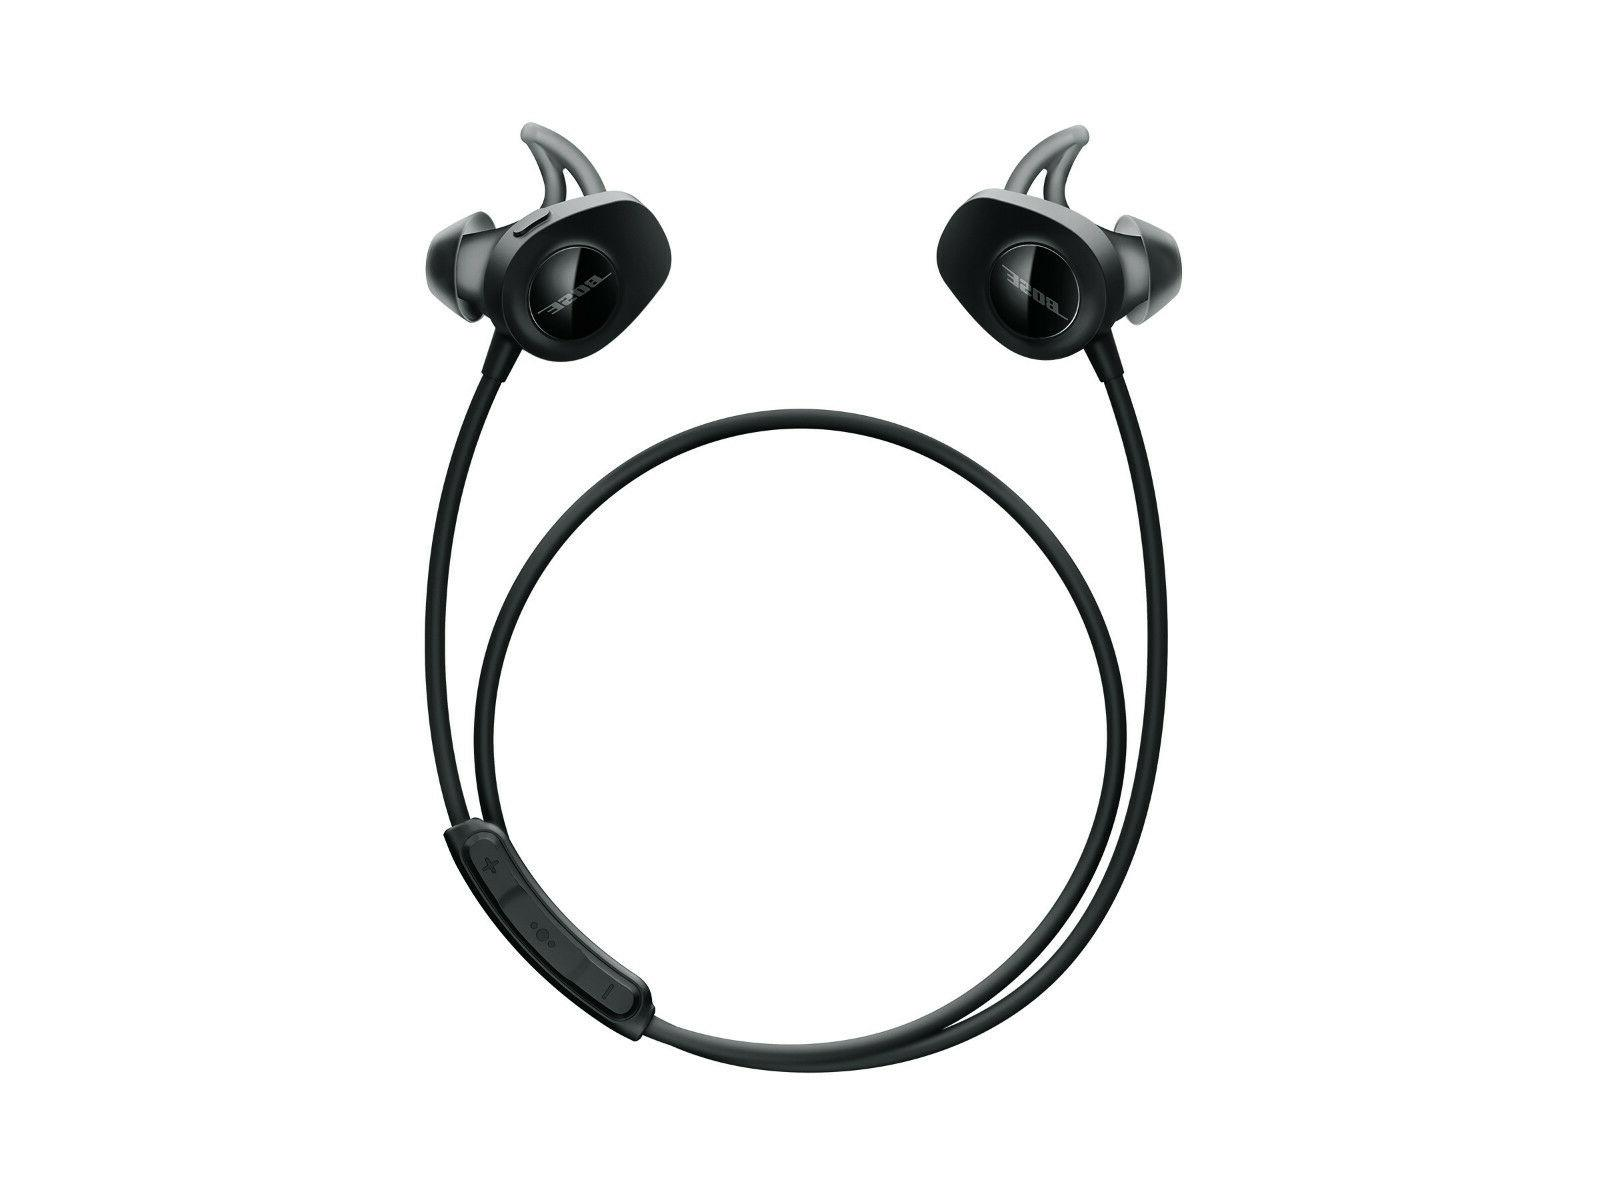 Bose Soundsport Bluetooth Wireless Earbuds, Sweat